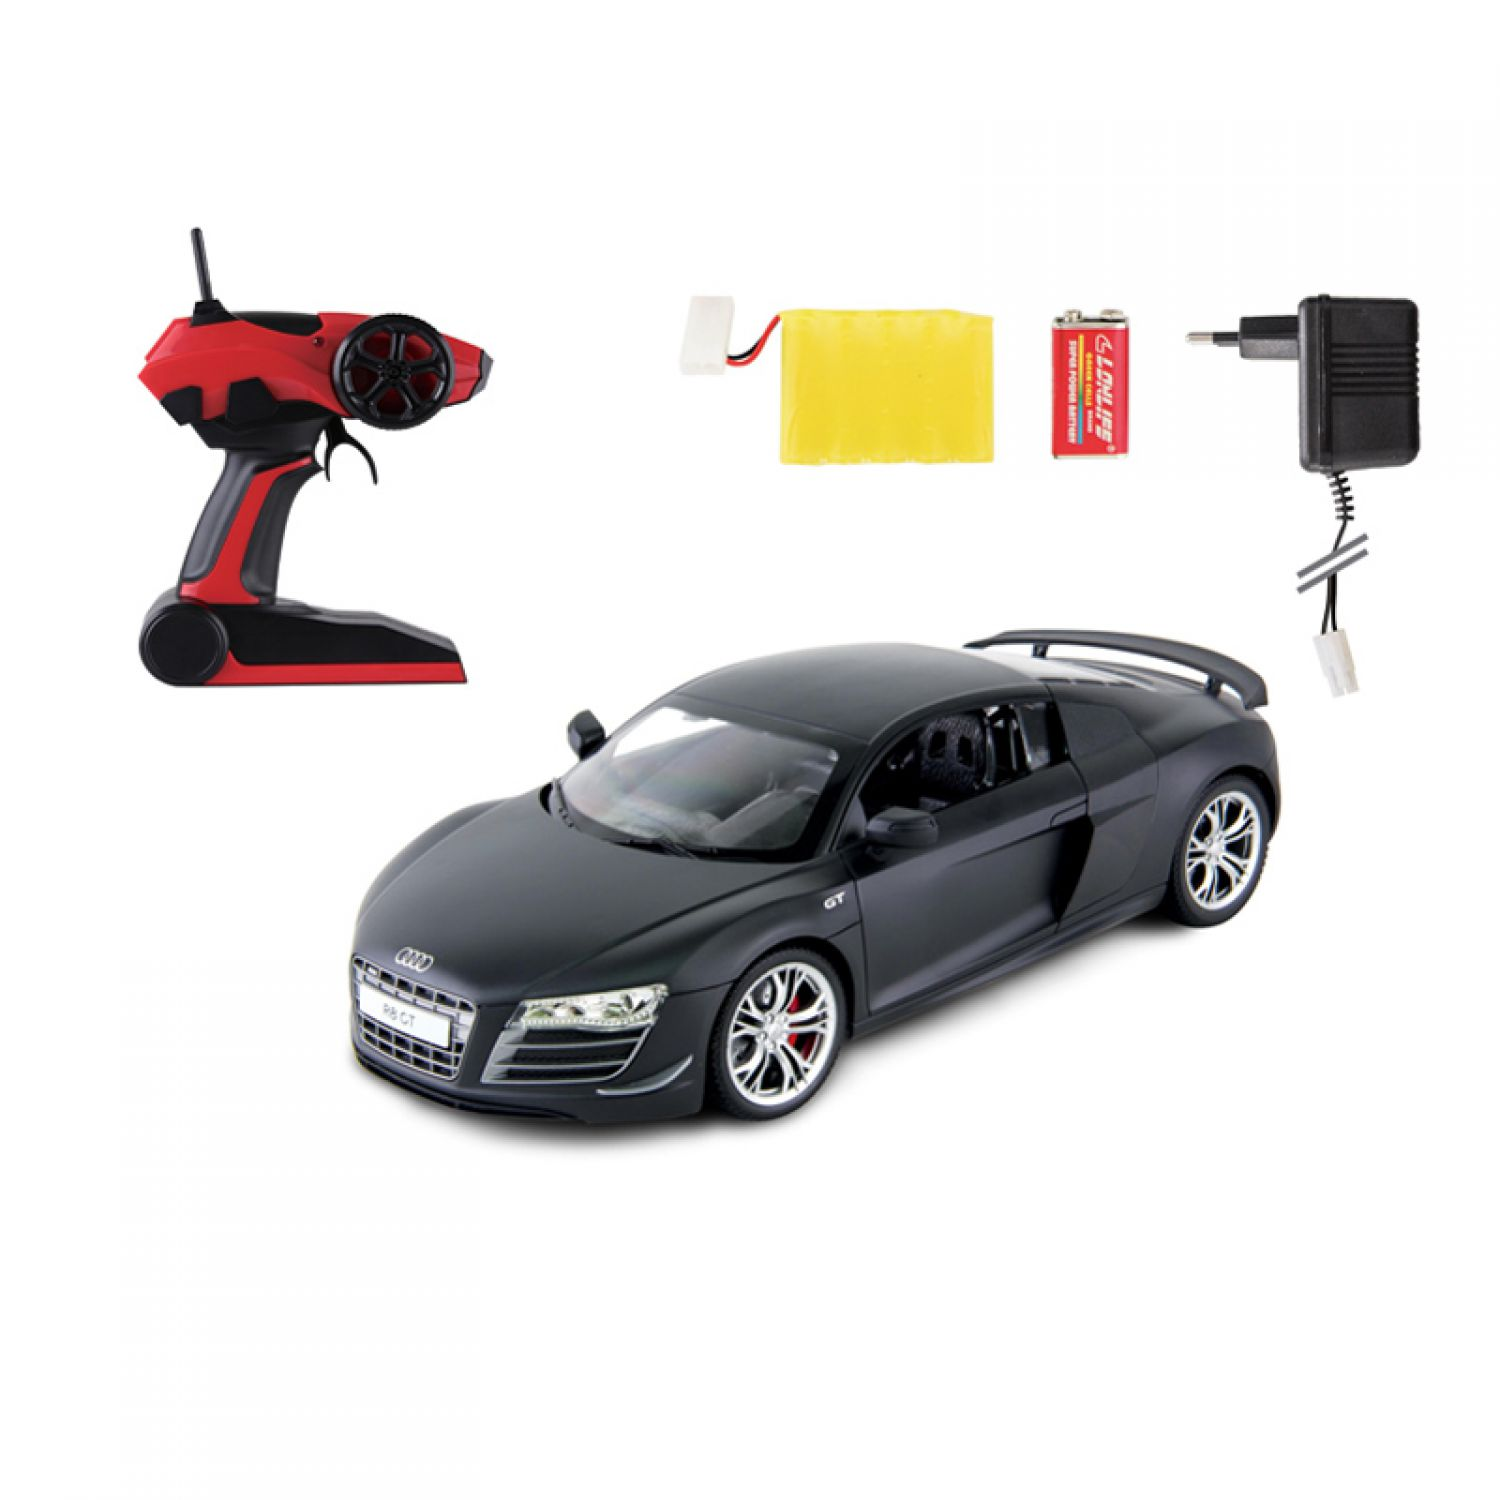 audi r8 gt ferngesteuertes auto 1 14 2 4 ghz schwarz. Black Bedroom Furniture Sets. Home Design Ideas